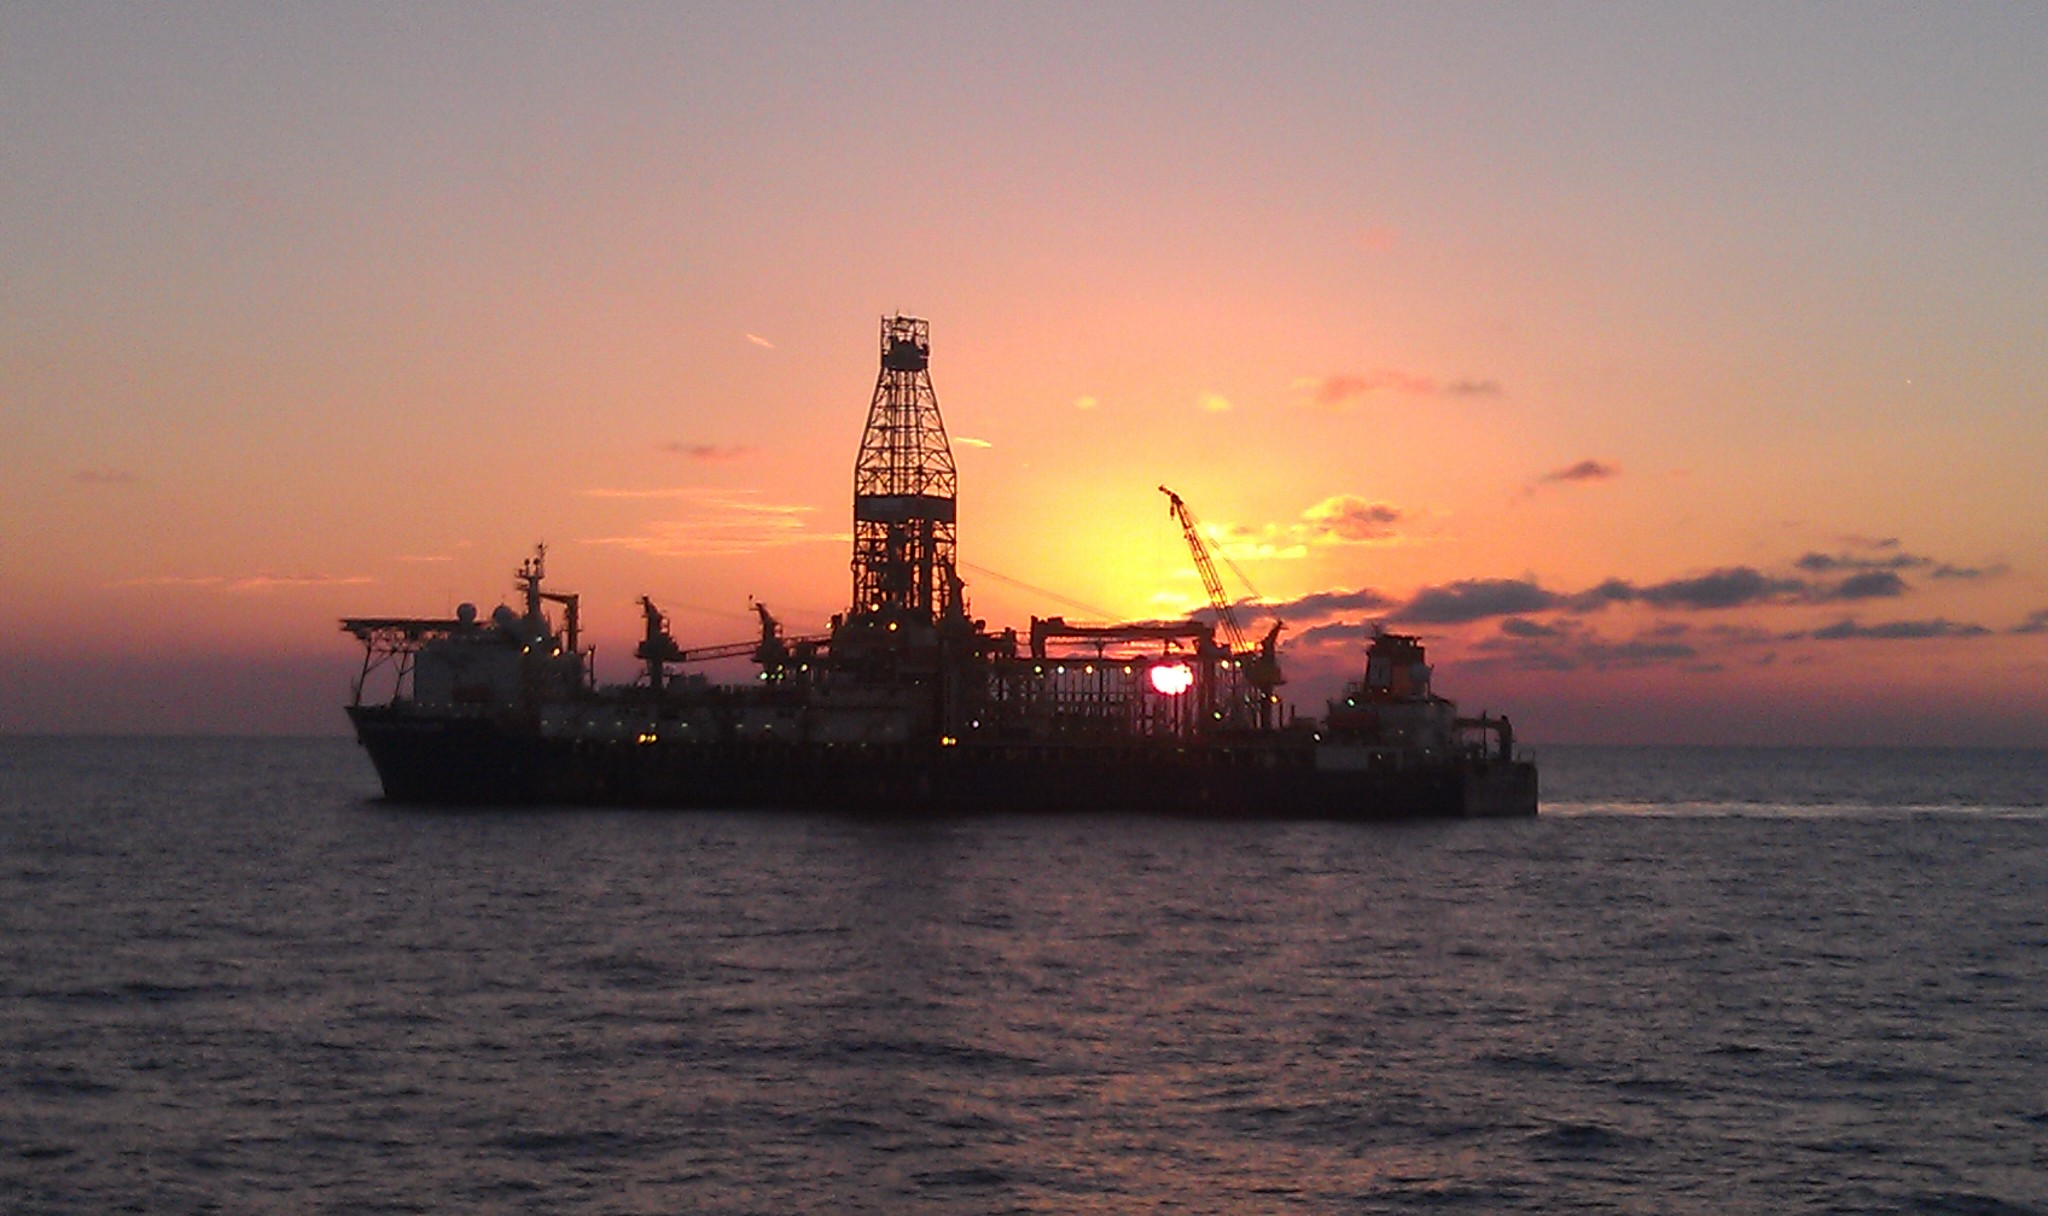 Sunset in the oil patch